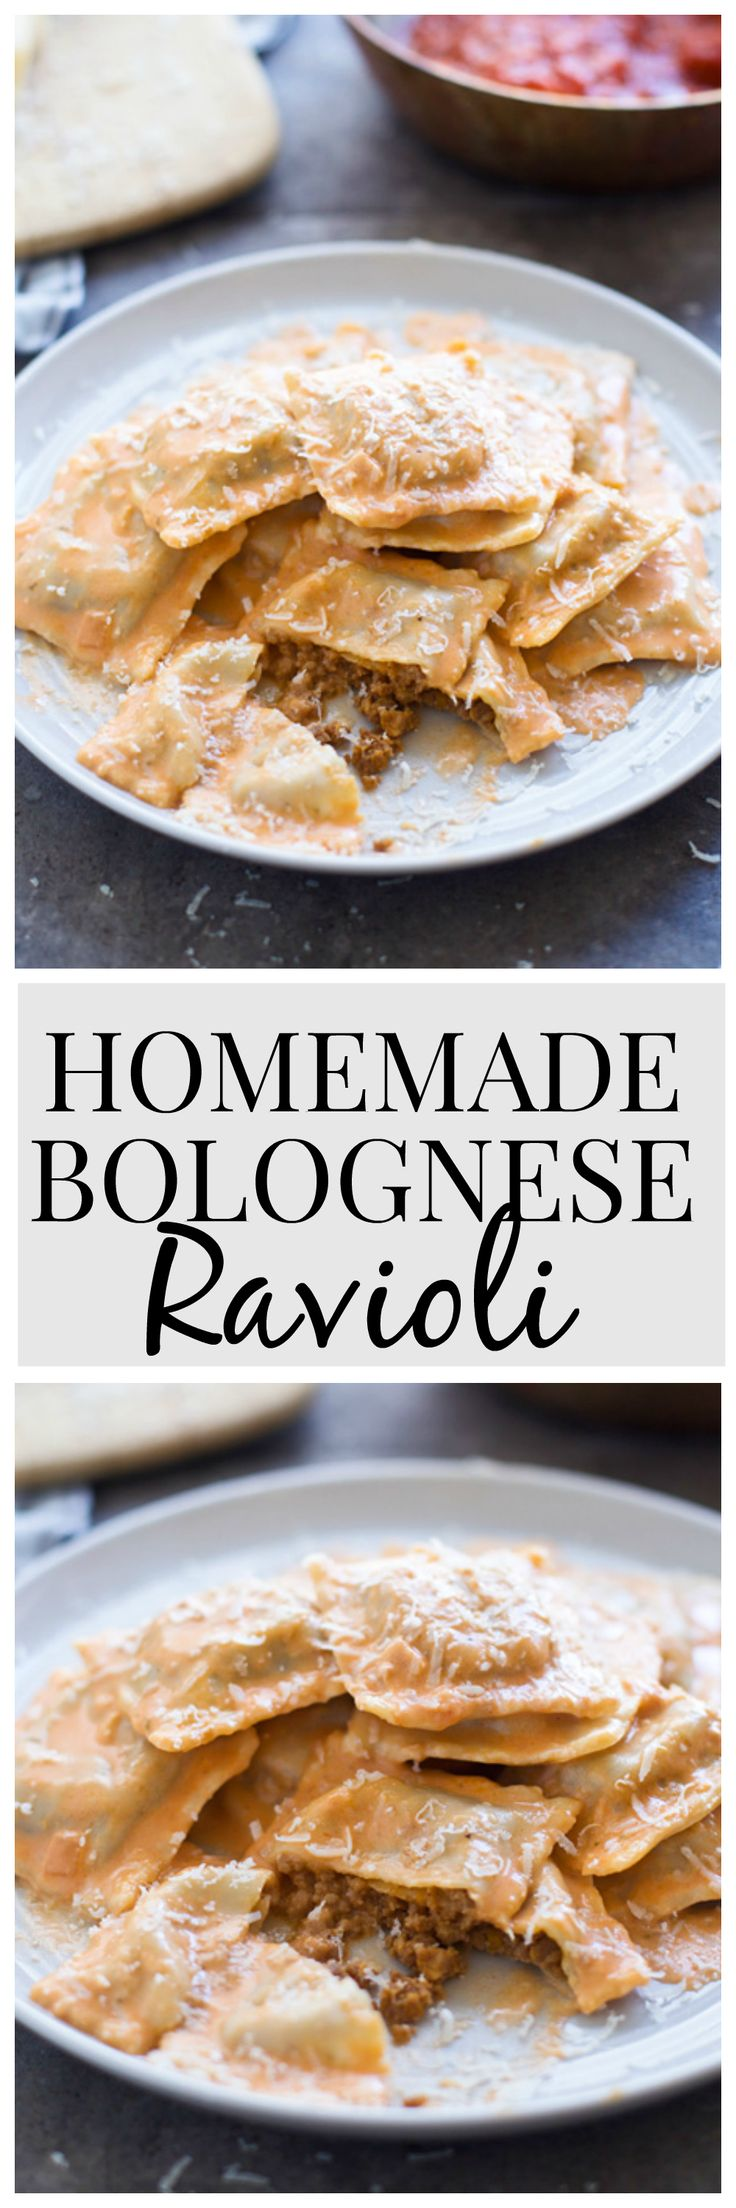 Homemade Bolognese Ravioli - melt-in-your-mouth pasta stuffed with a bolognese-style filling and tossed in a cheesy tomato cream sauce!